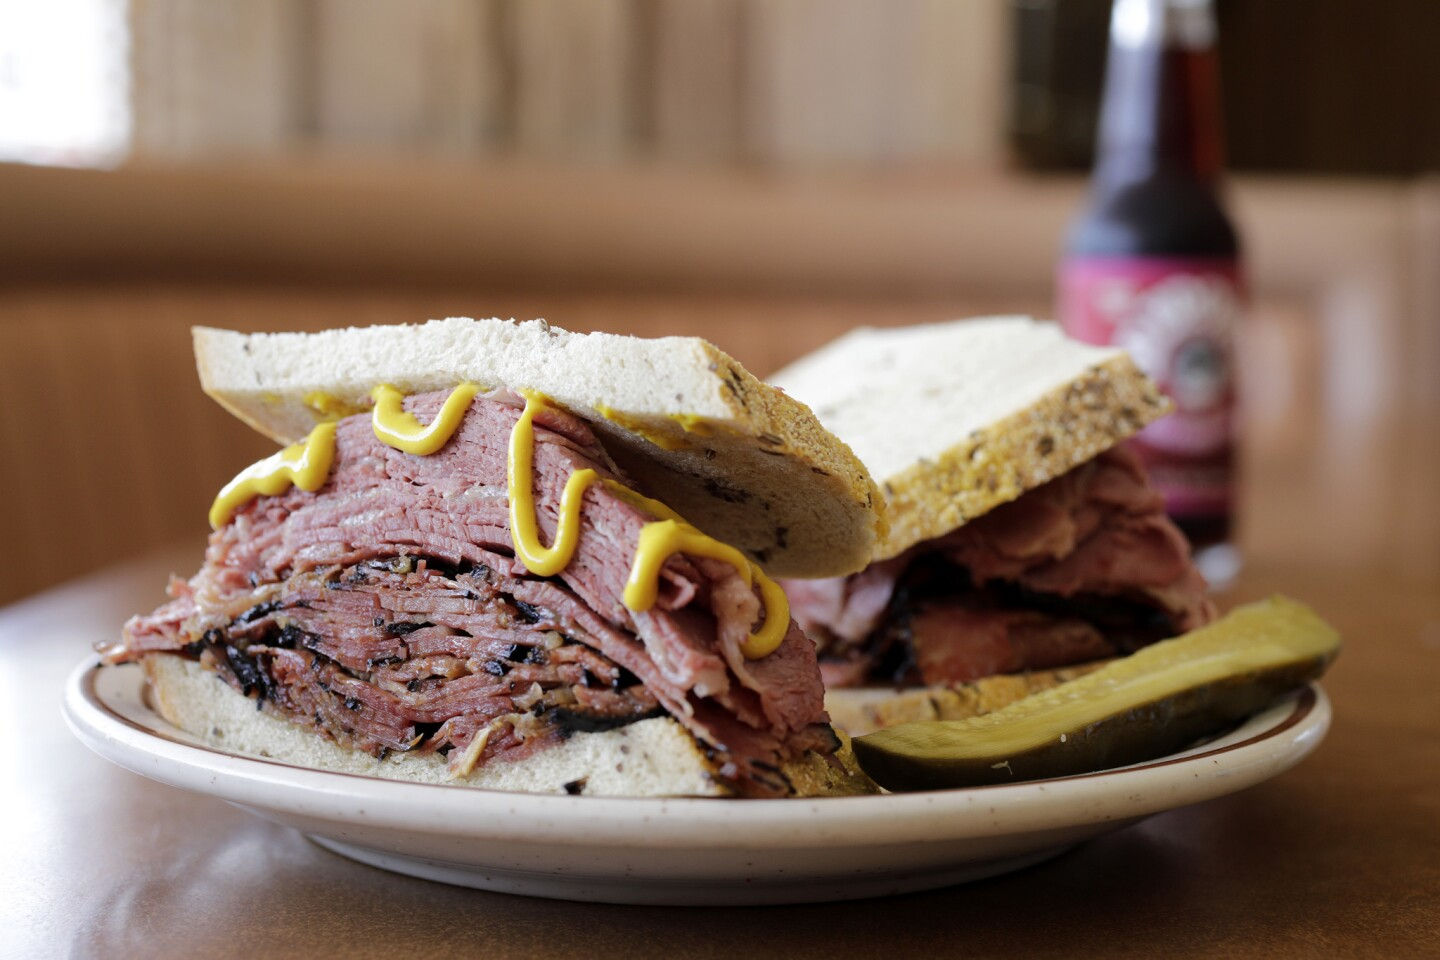 Canter's Fairfax Sandwich features hot corned beef and pastrami on rye bread with a choice of cole slaw or potato salad. The family-owned Canter's has been an L.A. institution for decades.